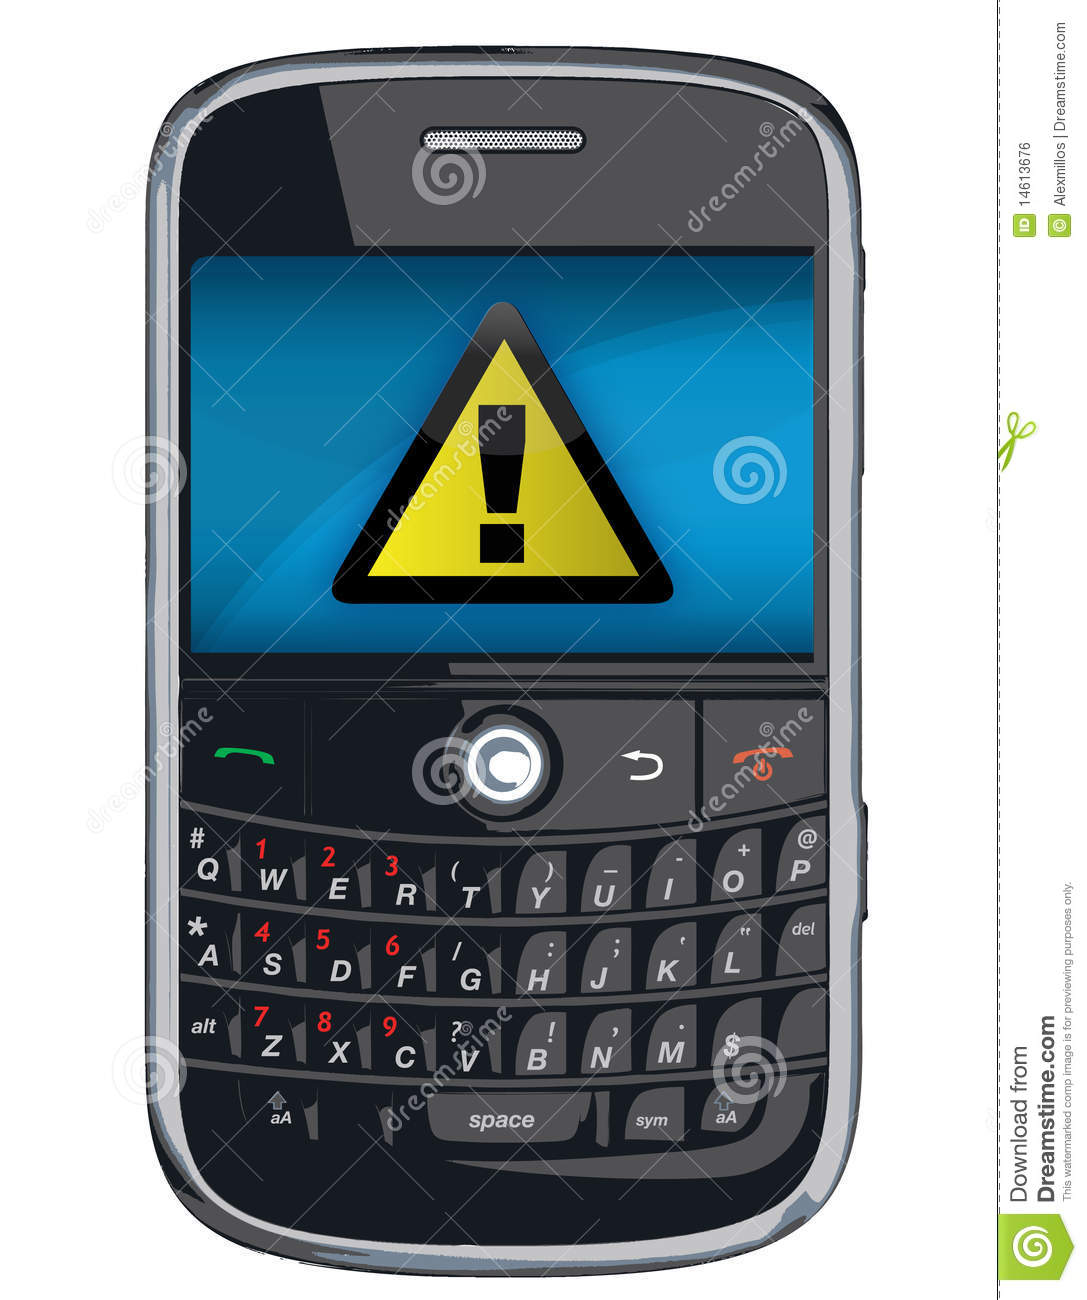 clipart for blackberry phone - photo #16